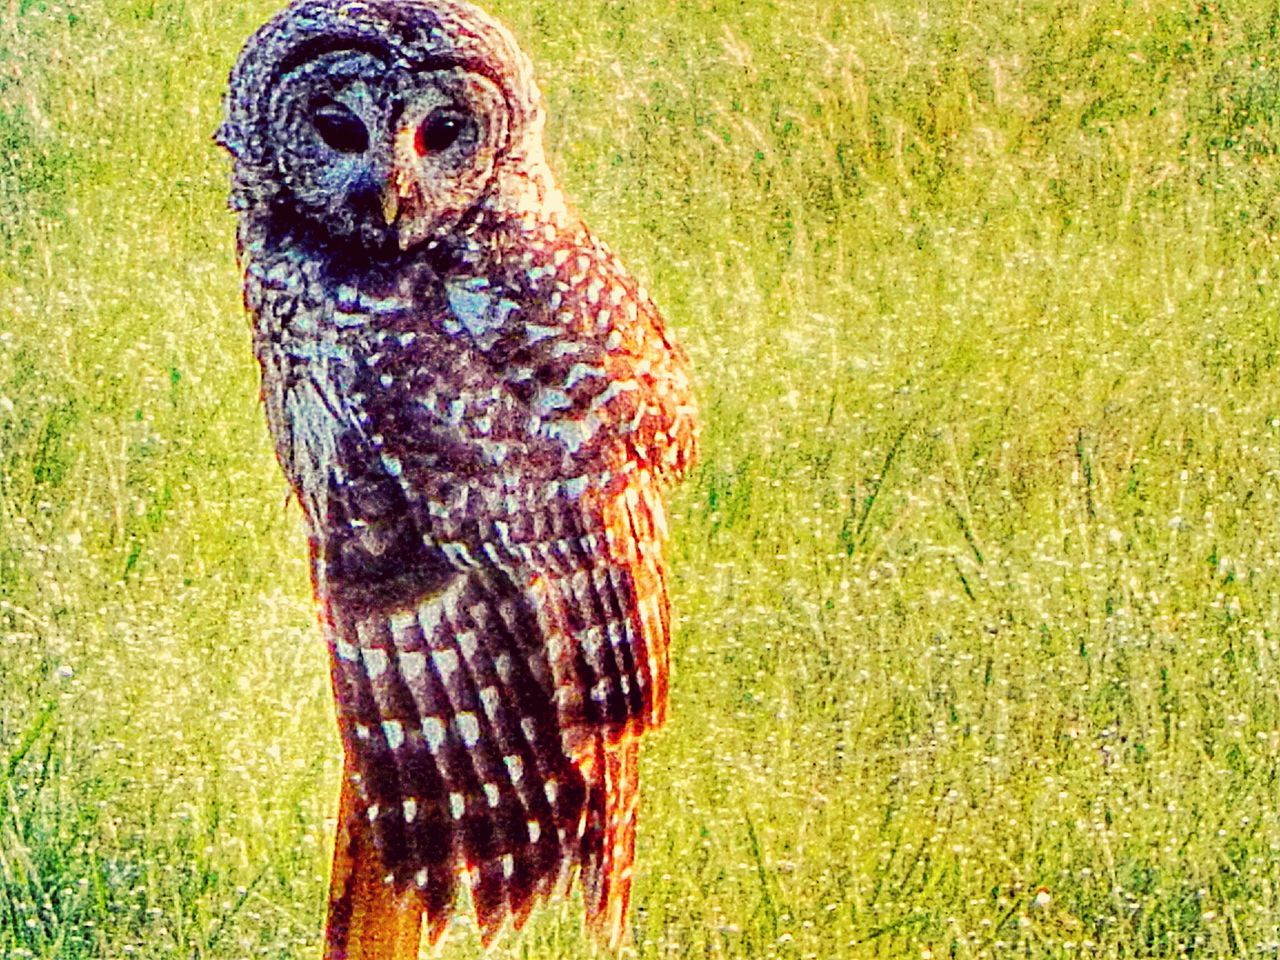 grass, one animal, bird, nature, field, animal themes, green color, outdoors, no people, day, domestic animals, bird of prey